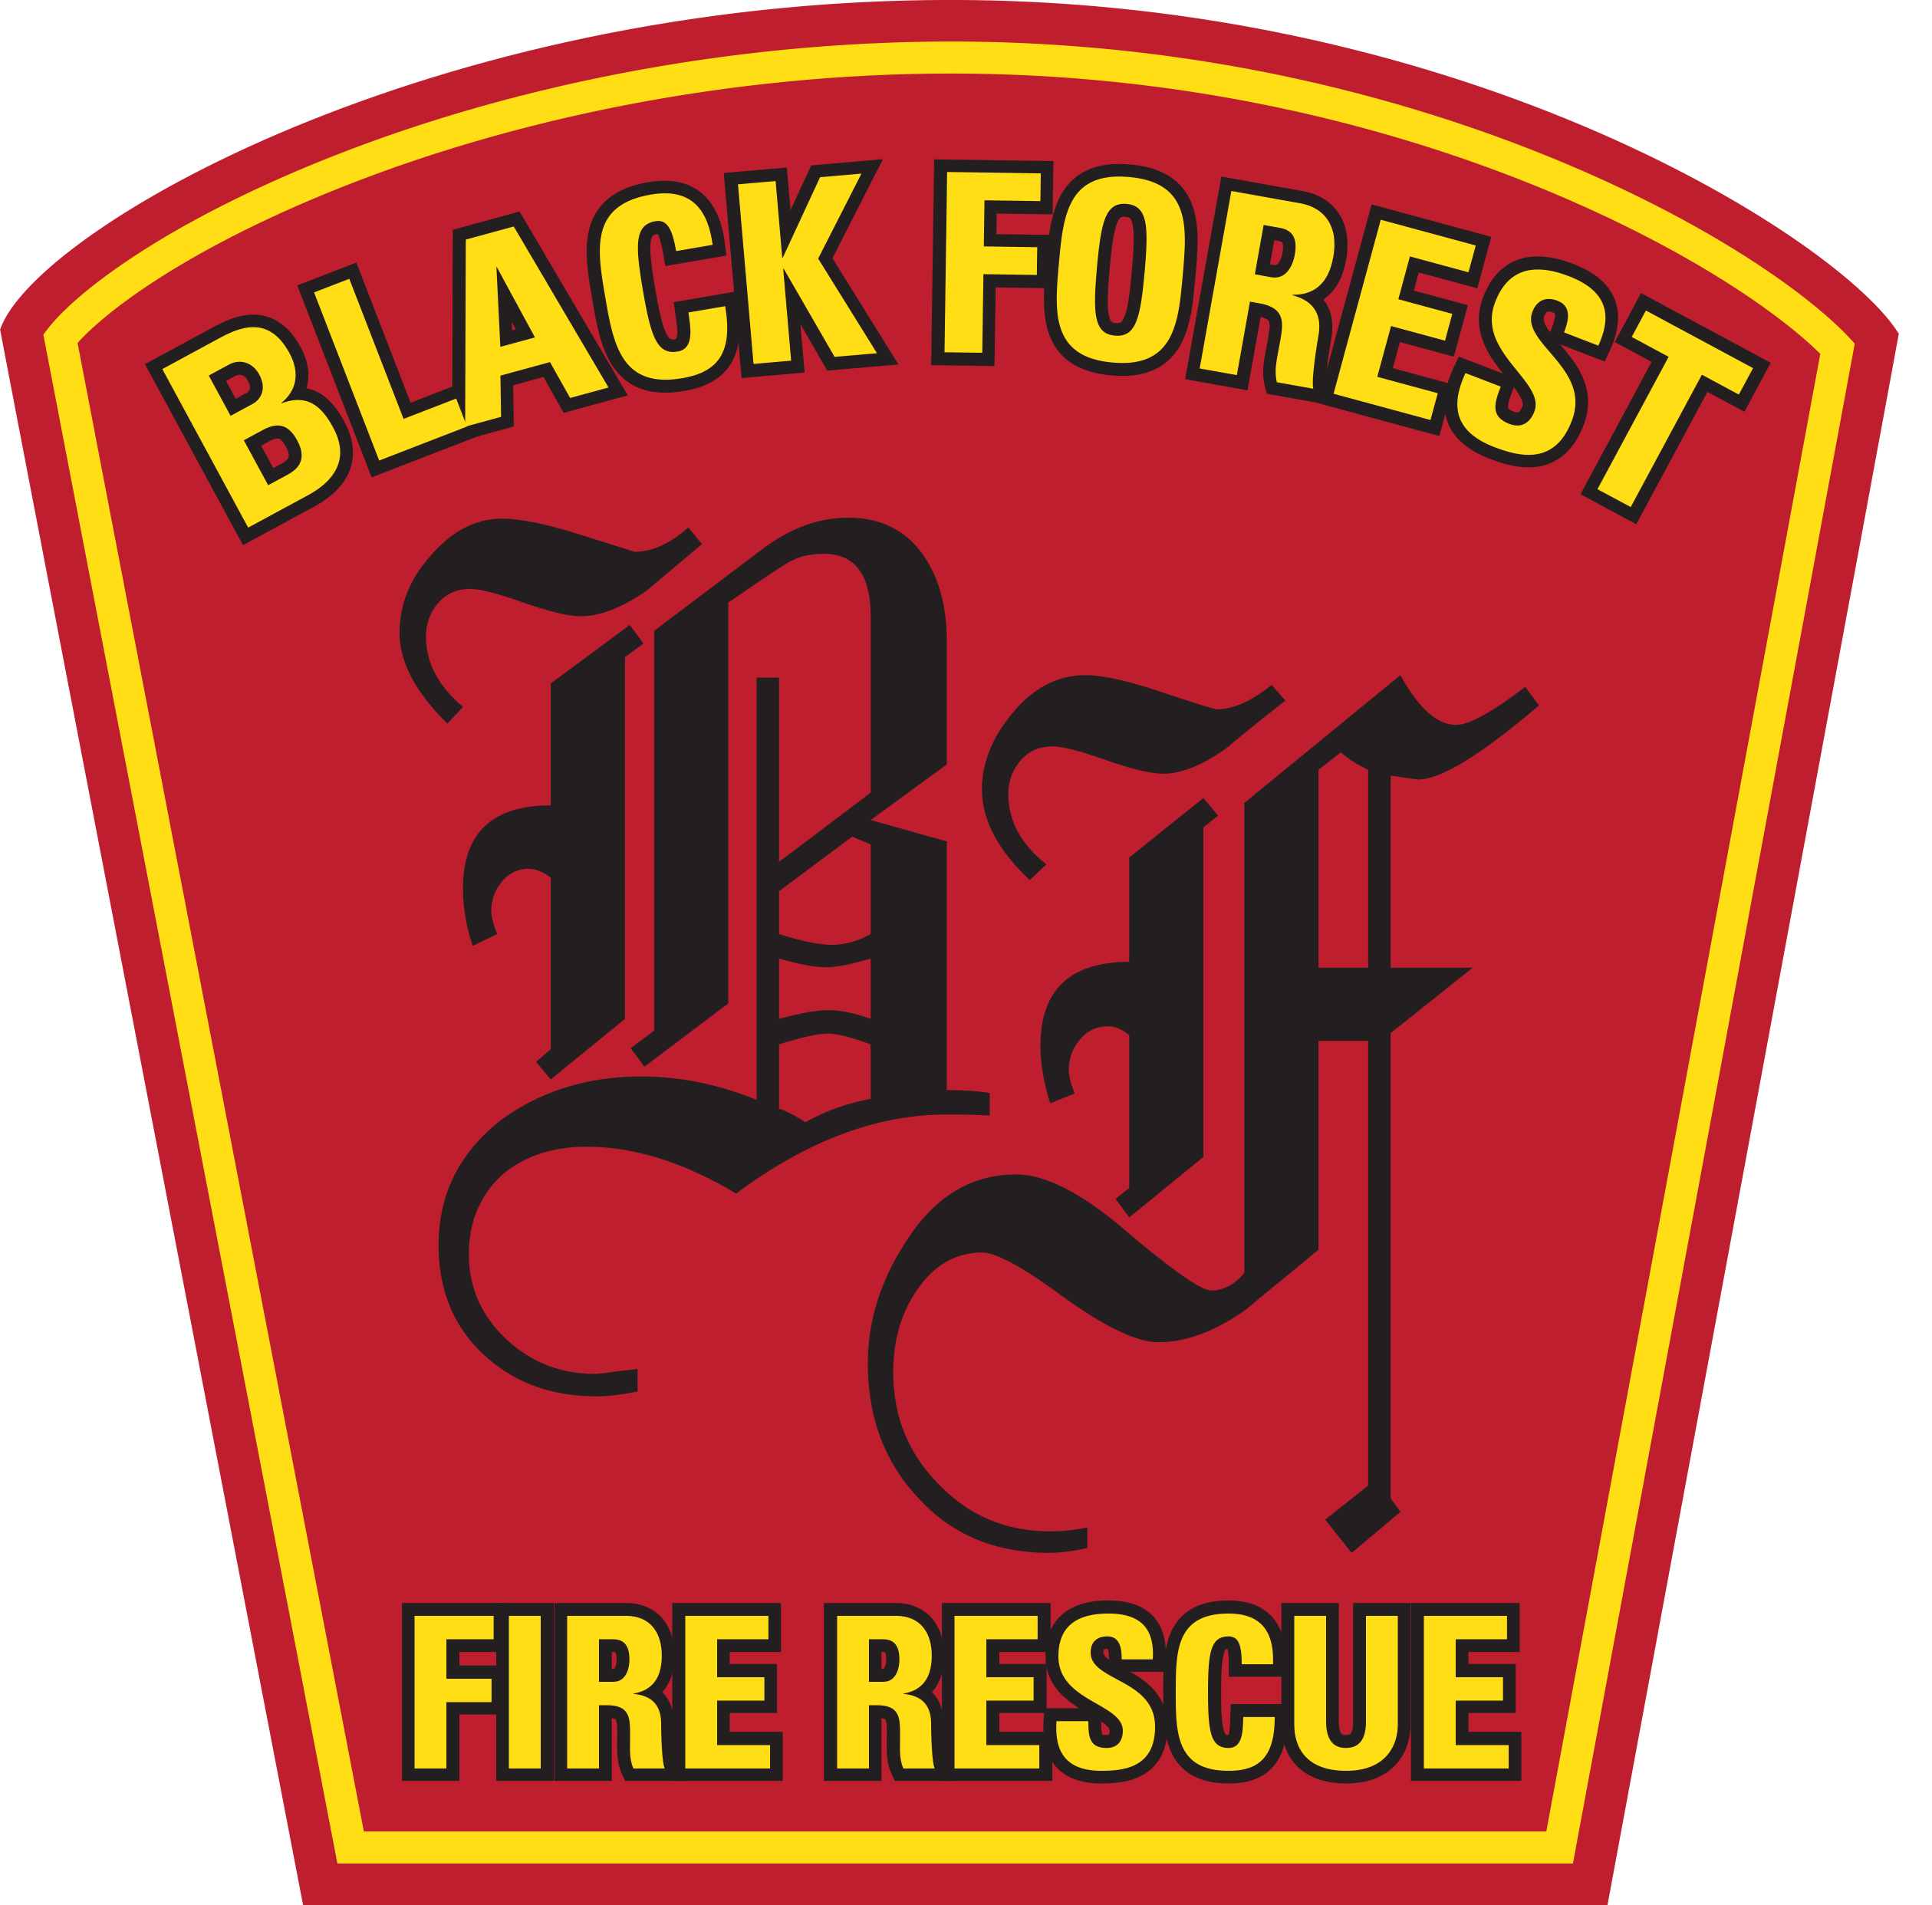 Black Forest Fire Rescue